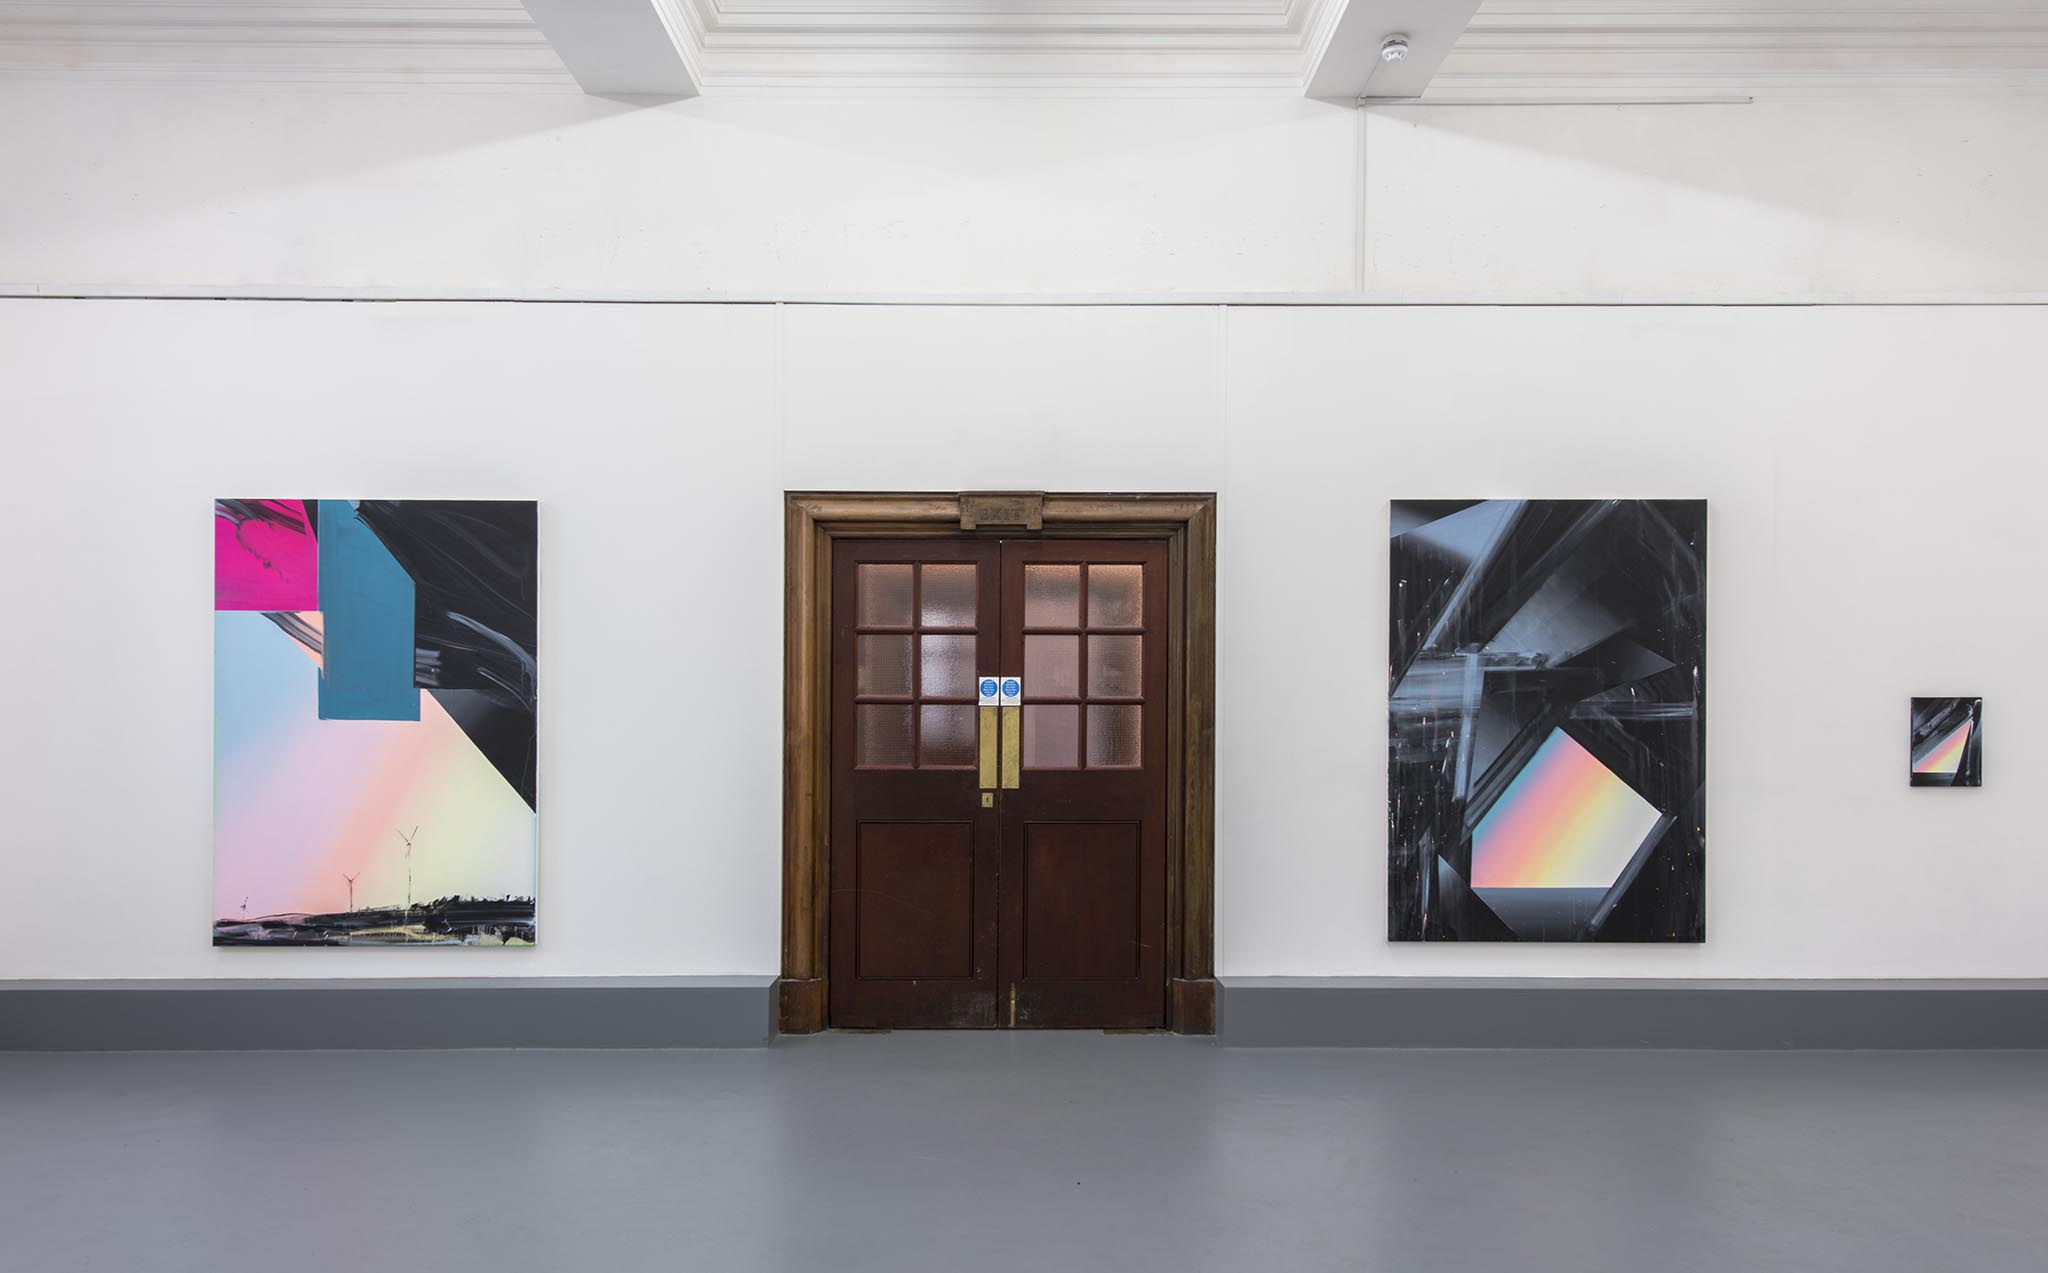 Phil Ashcroft, Cave Paintings, installation view, solo exhibition at Lewisham Arthouse, London 2015